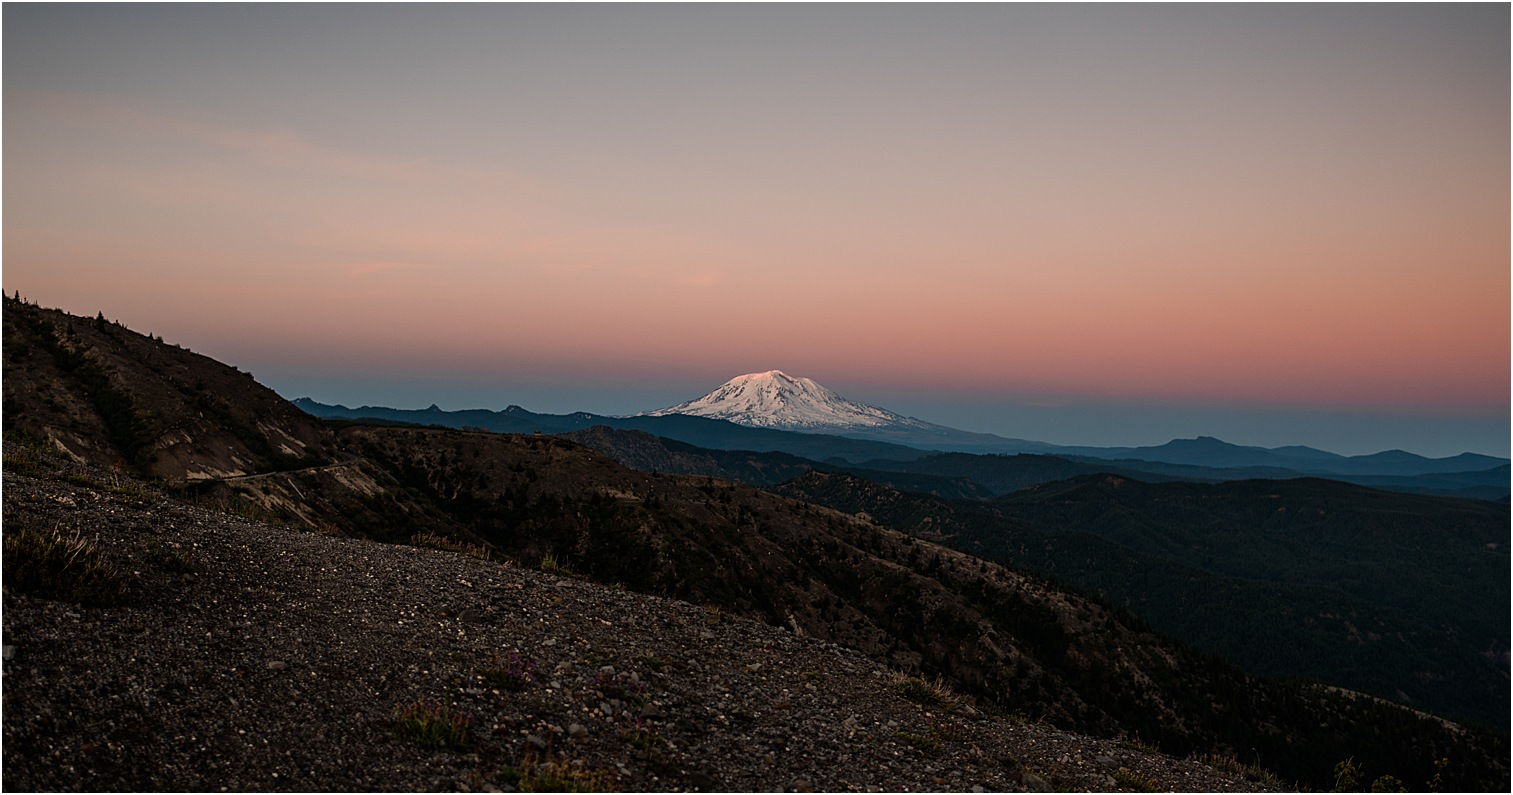 Mt. Adams at sunset via Mt St Helens viewpoint. Image by Forthright Photo, wedding & elopement photographers.